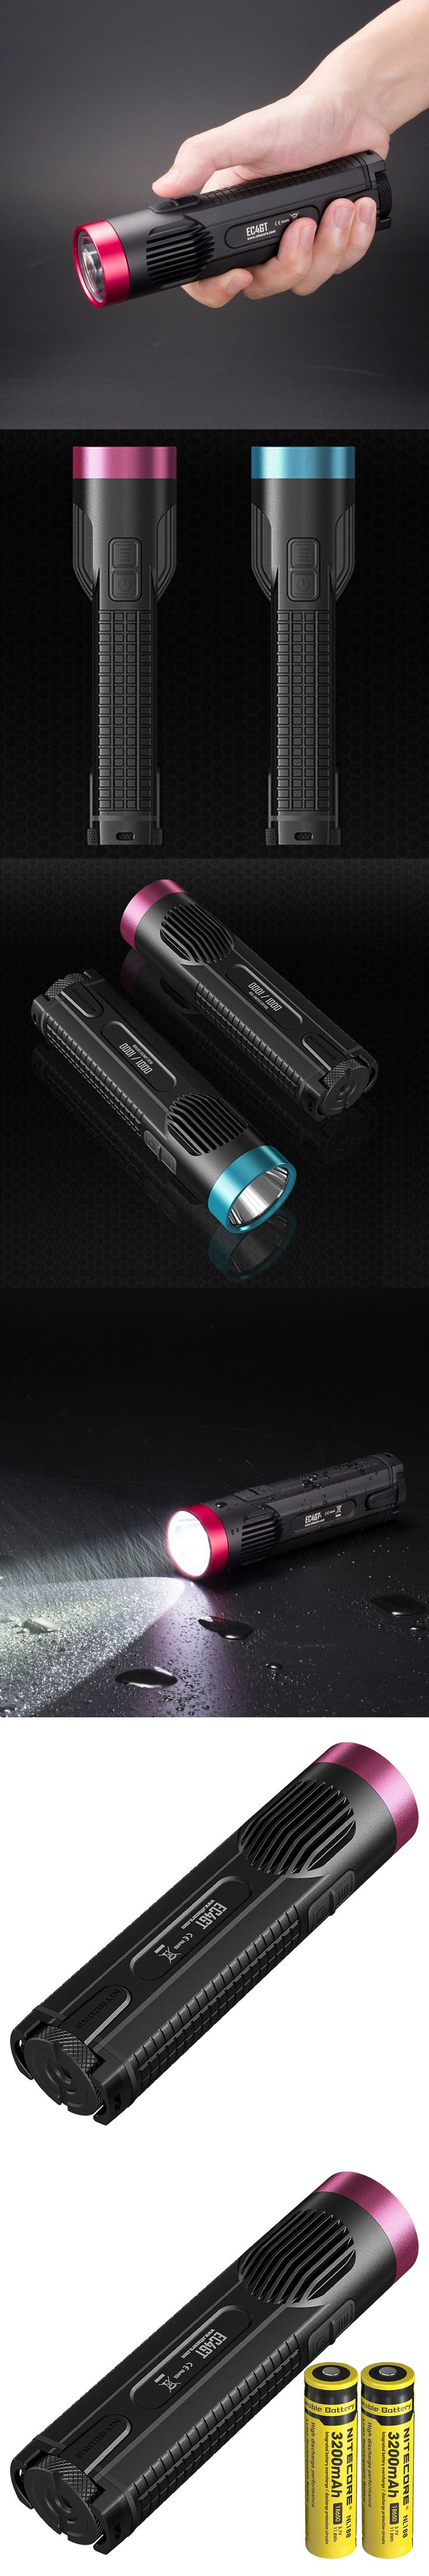 NITECORE EC4GT/Red LIMITED EDITION 1000 lm Flashlight Torch Camping Lamp Light for Diver+2*18650 batteries 3200MAH FREE SHIPPING